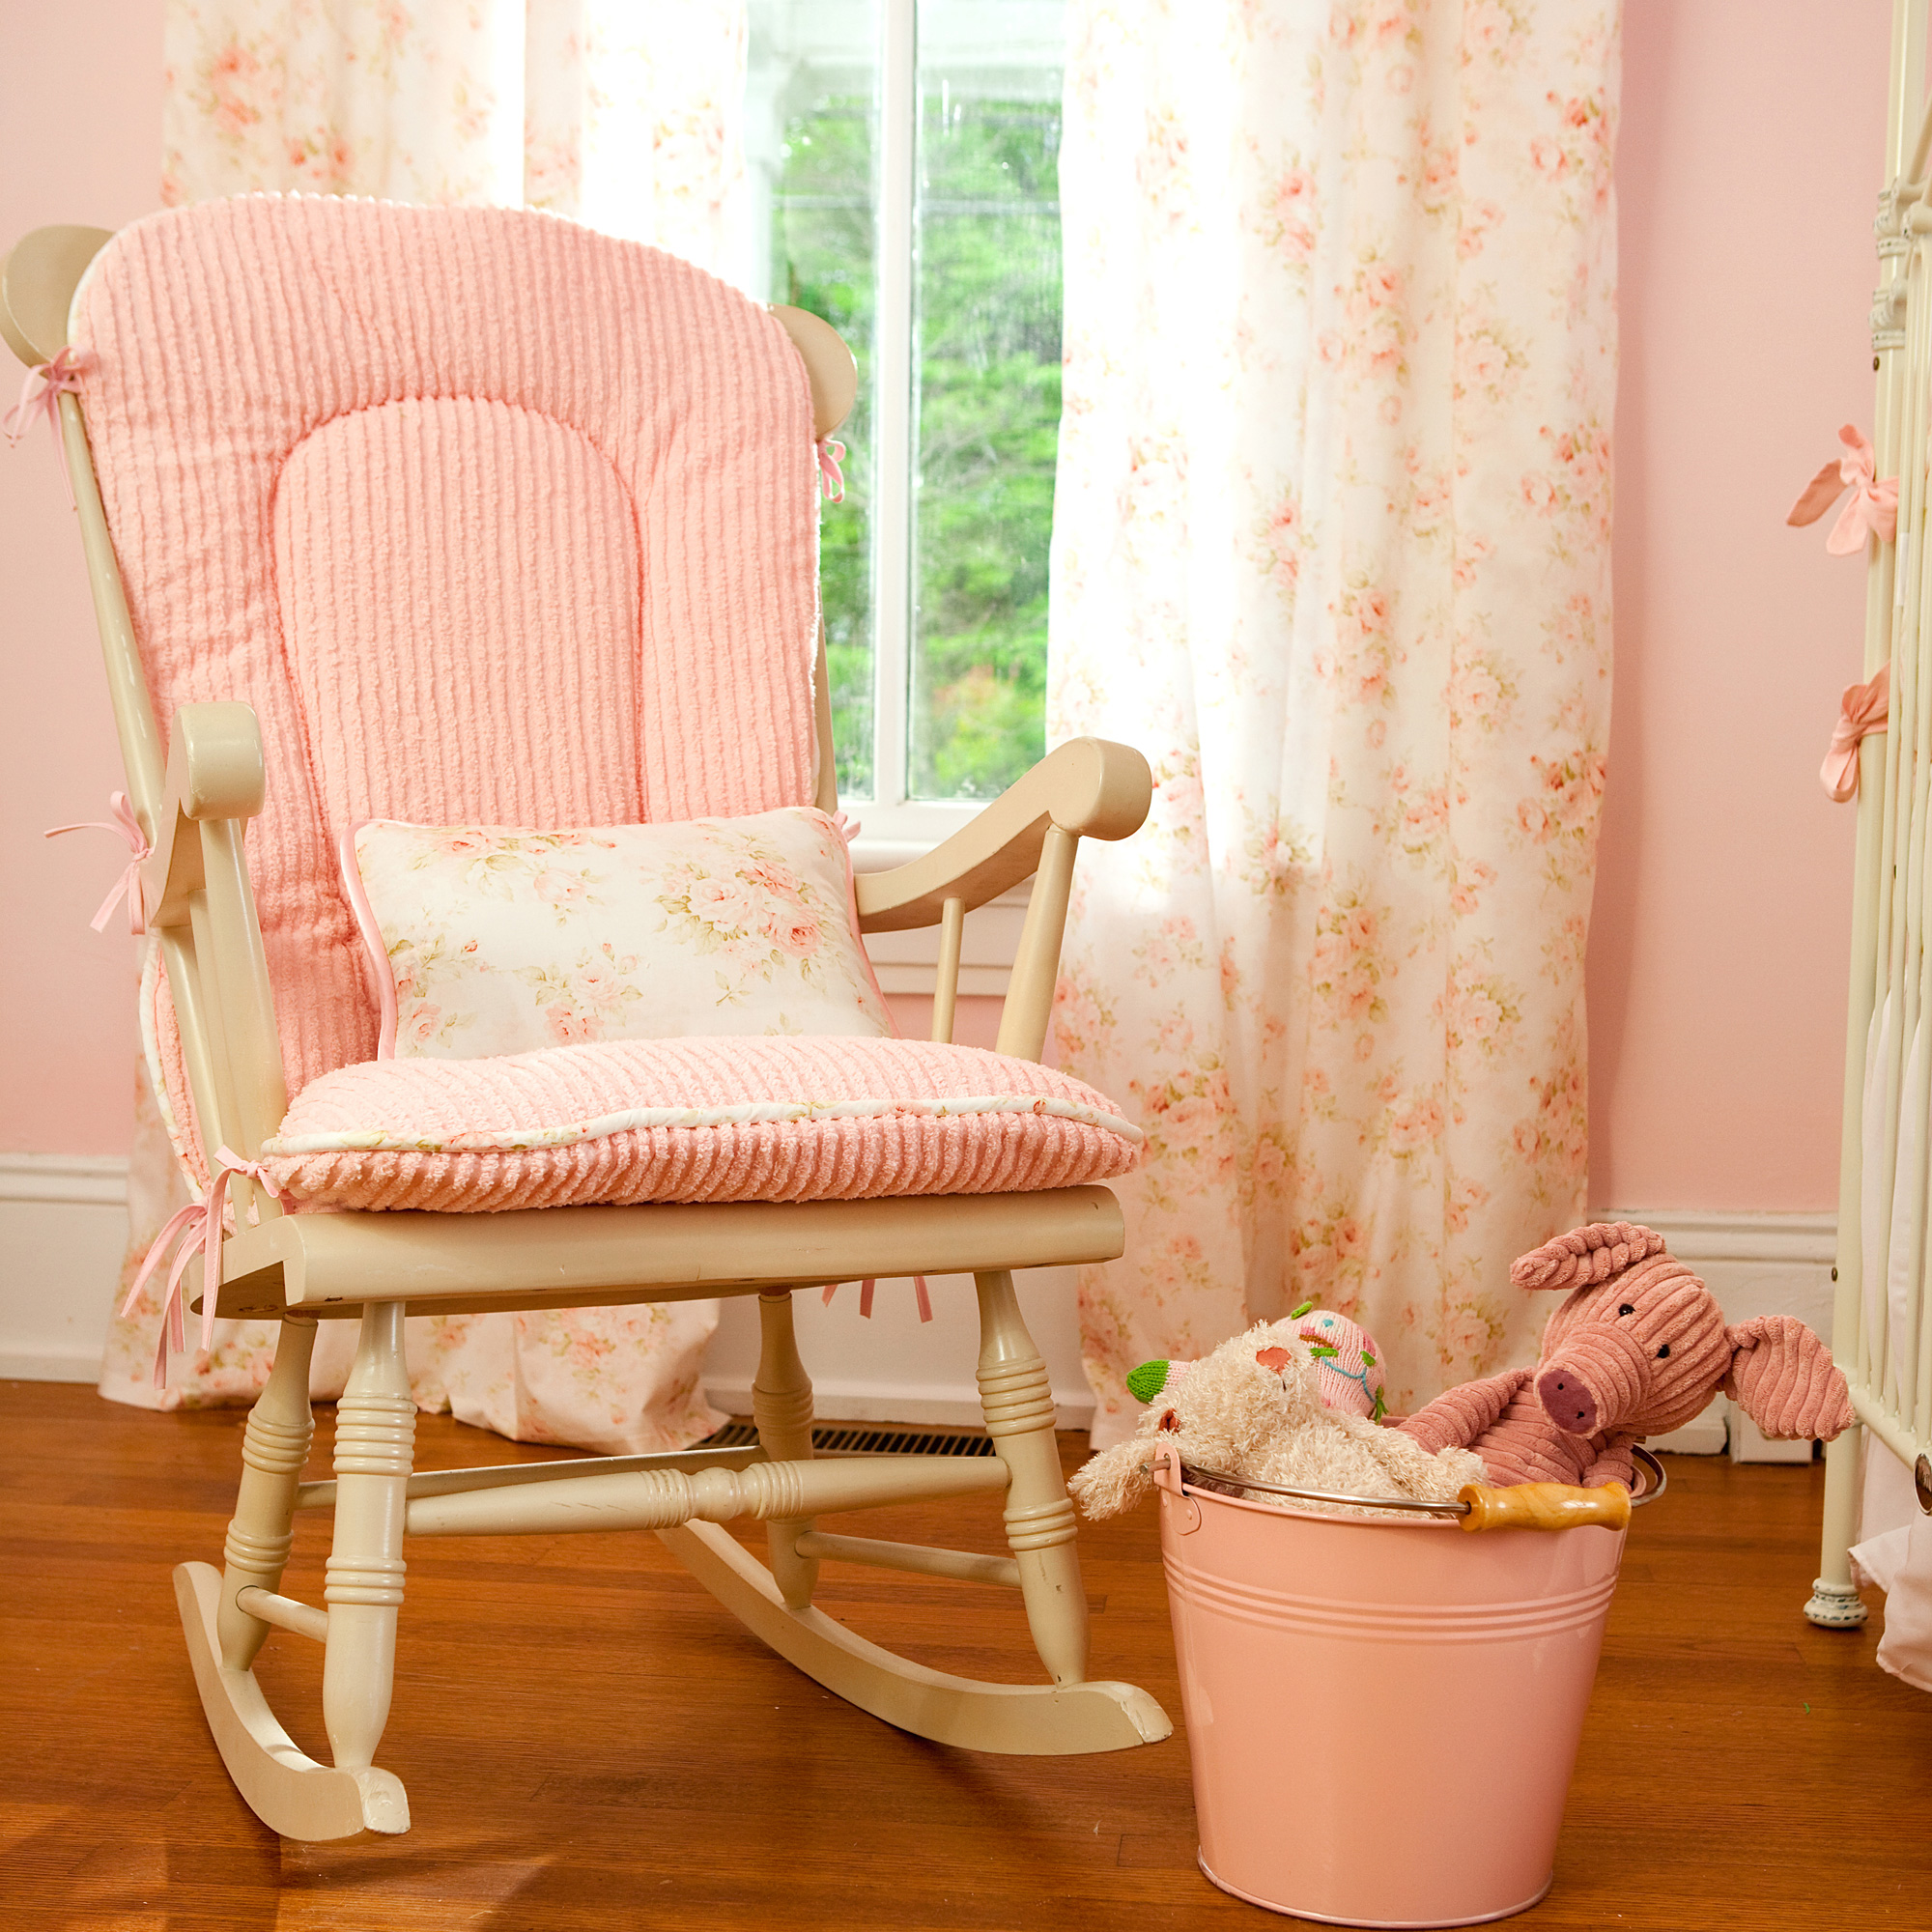 Image of: Baby Rocking Chair for Nursery